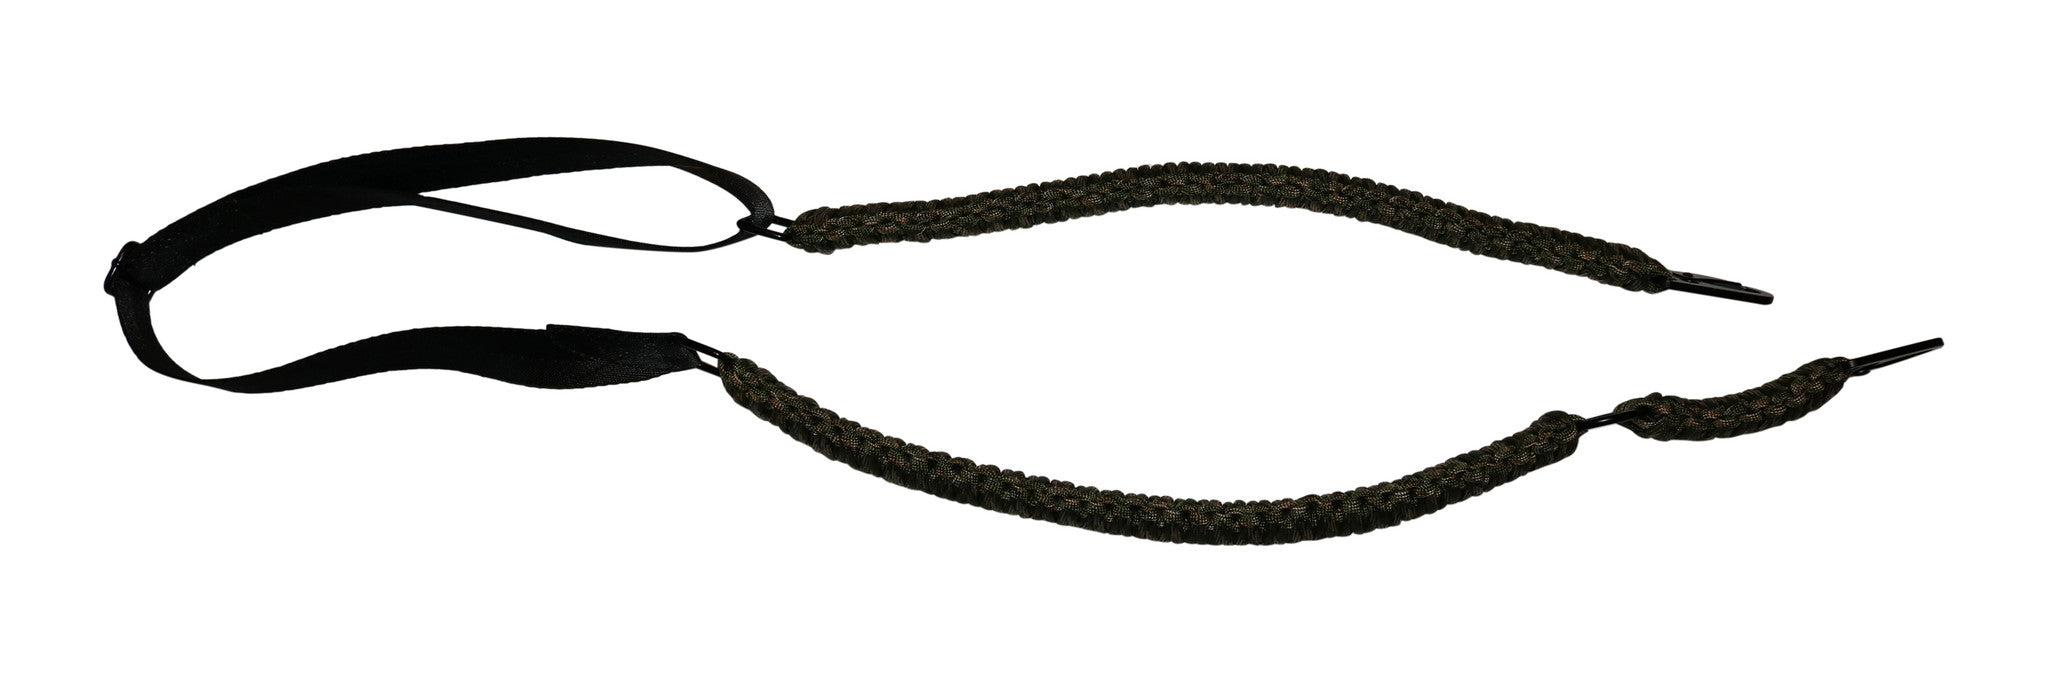 Featuring our NEW Paracord Gun Slings